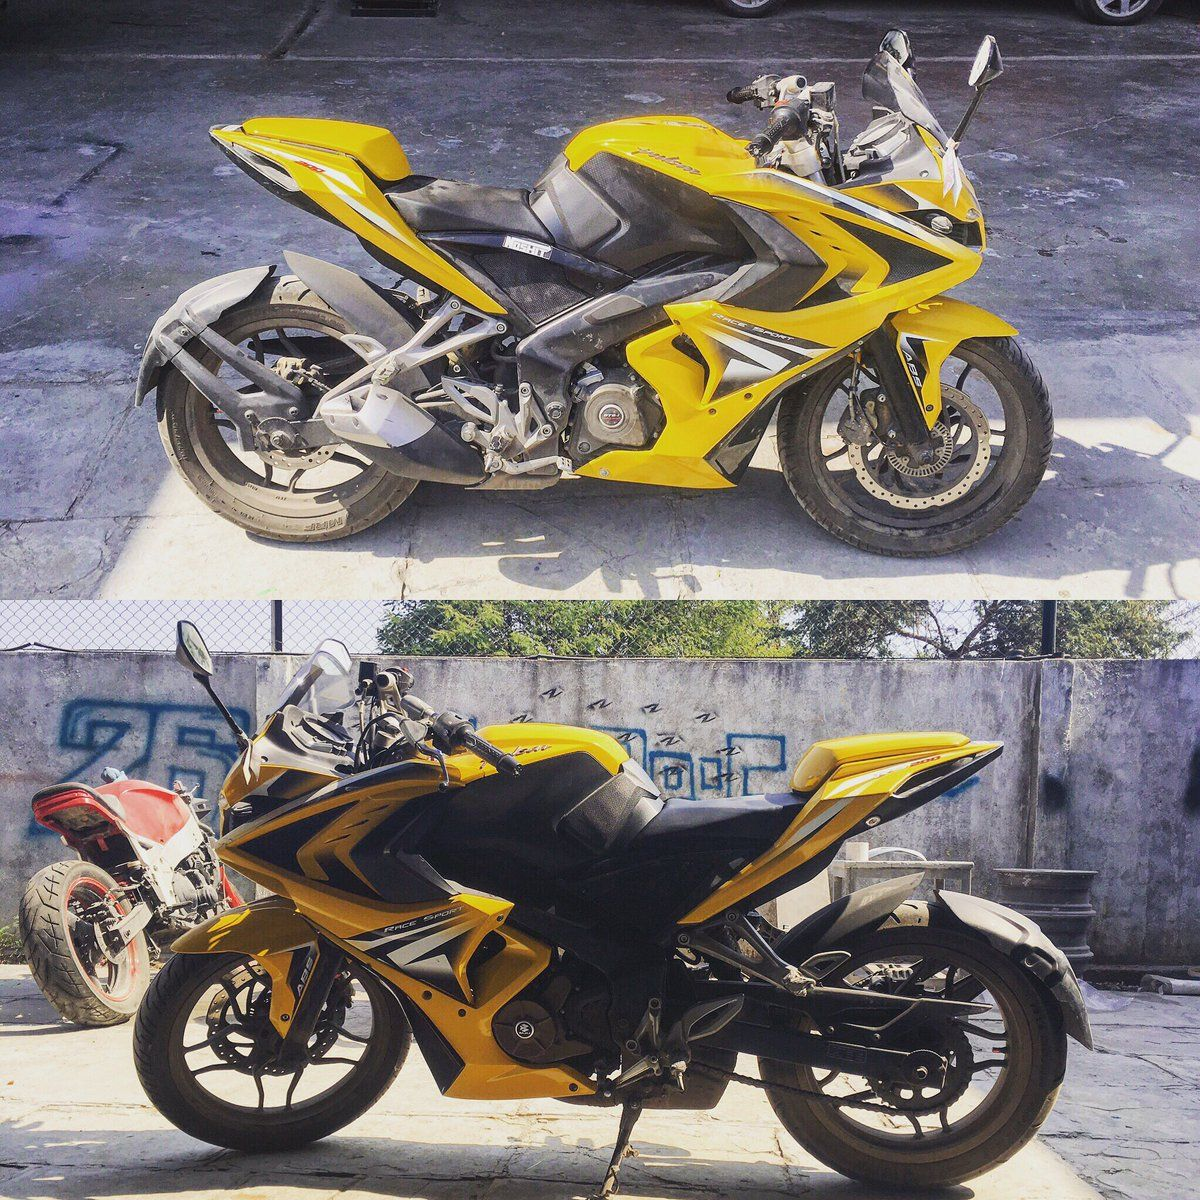 Pulsar200rs Hashtag On Twitter Motorcycle Wallpaper Harley